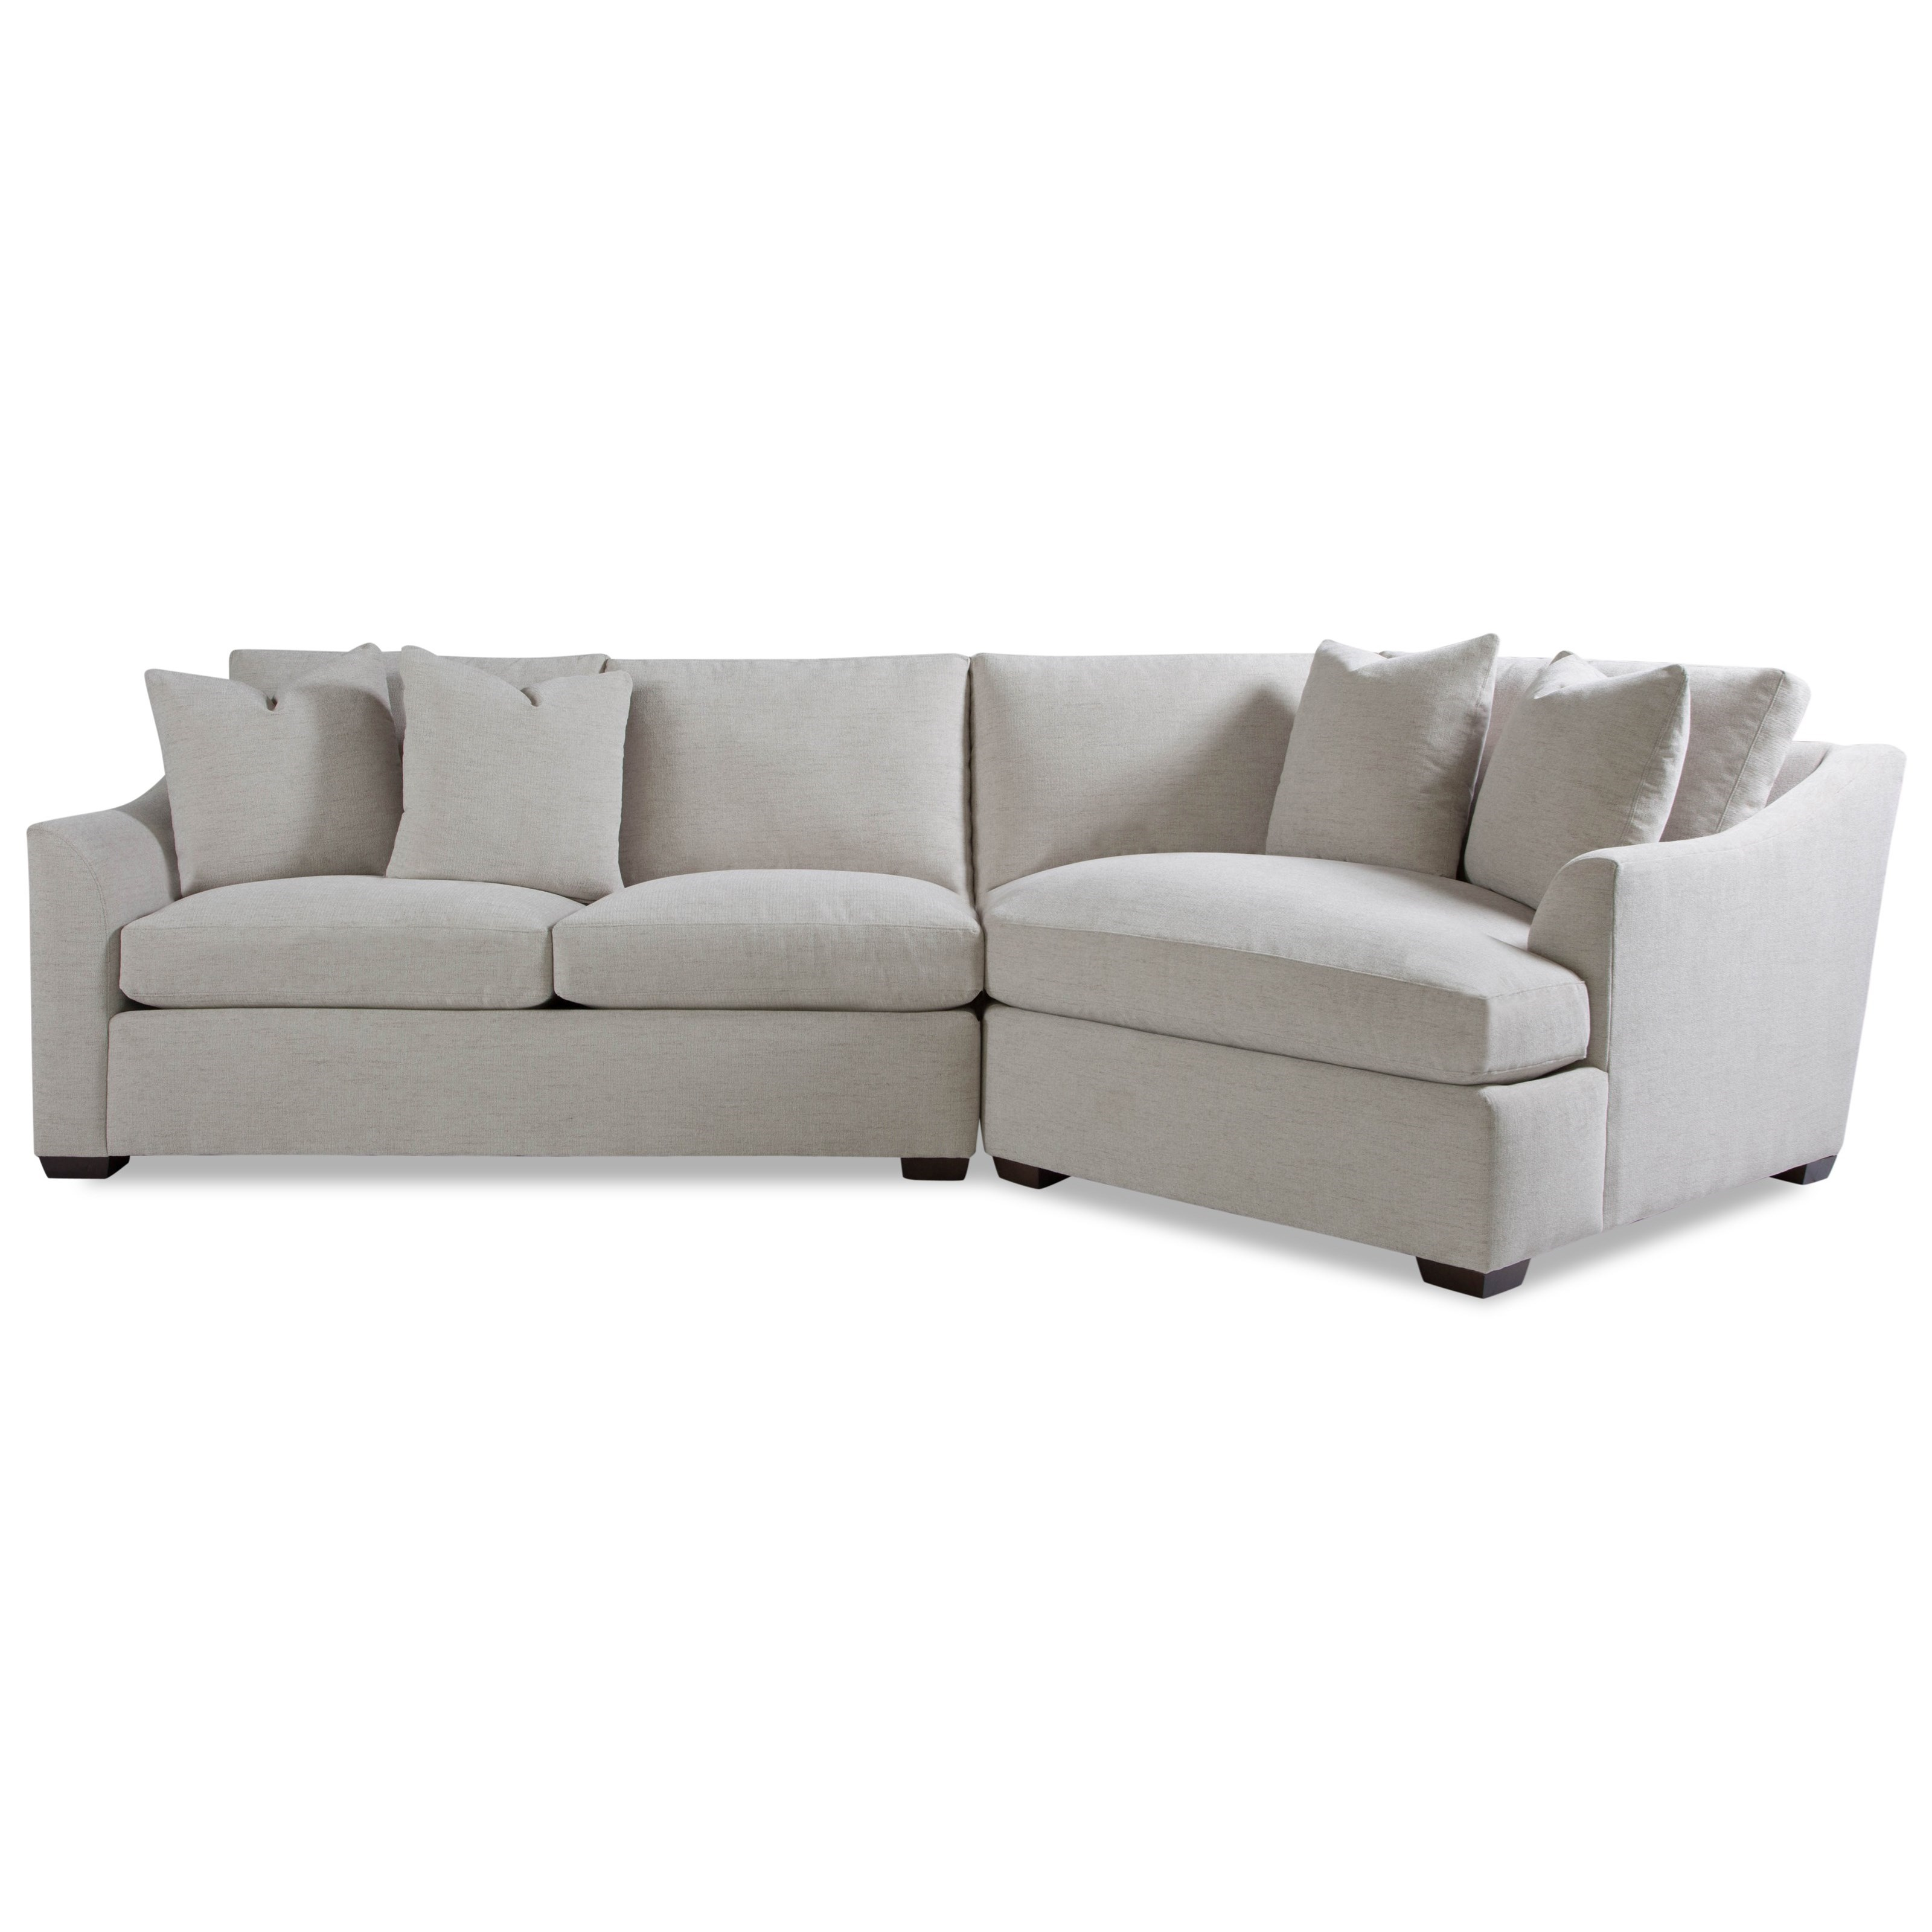 Plush 2 Pc Sectional Sofa w/ Flare Arms by Geoffrey Alexander at Sprintz Furniture